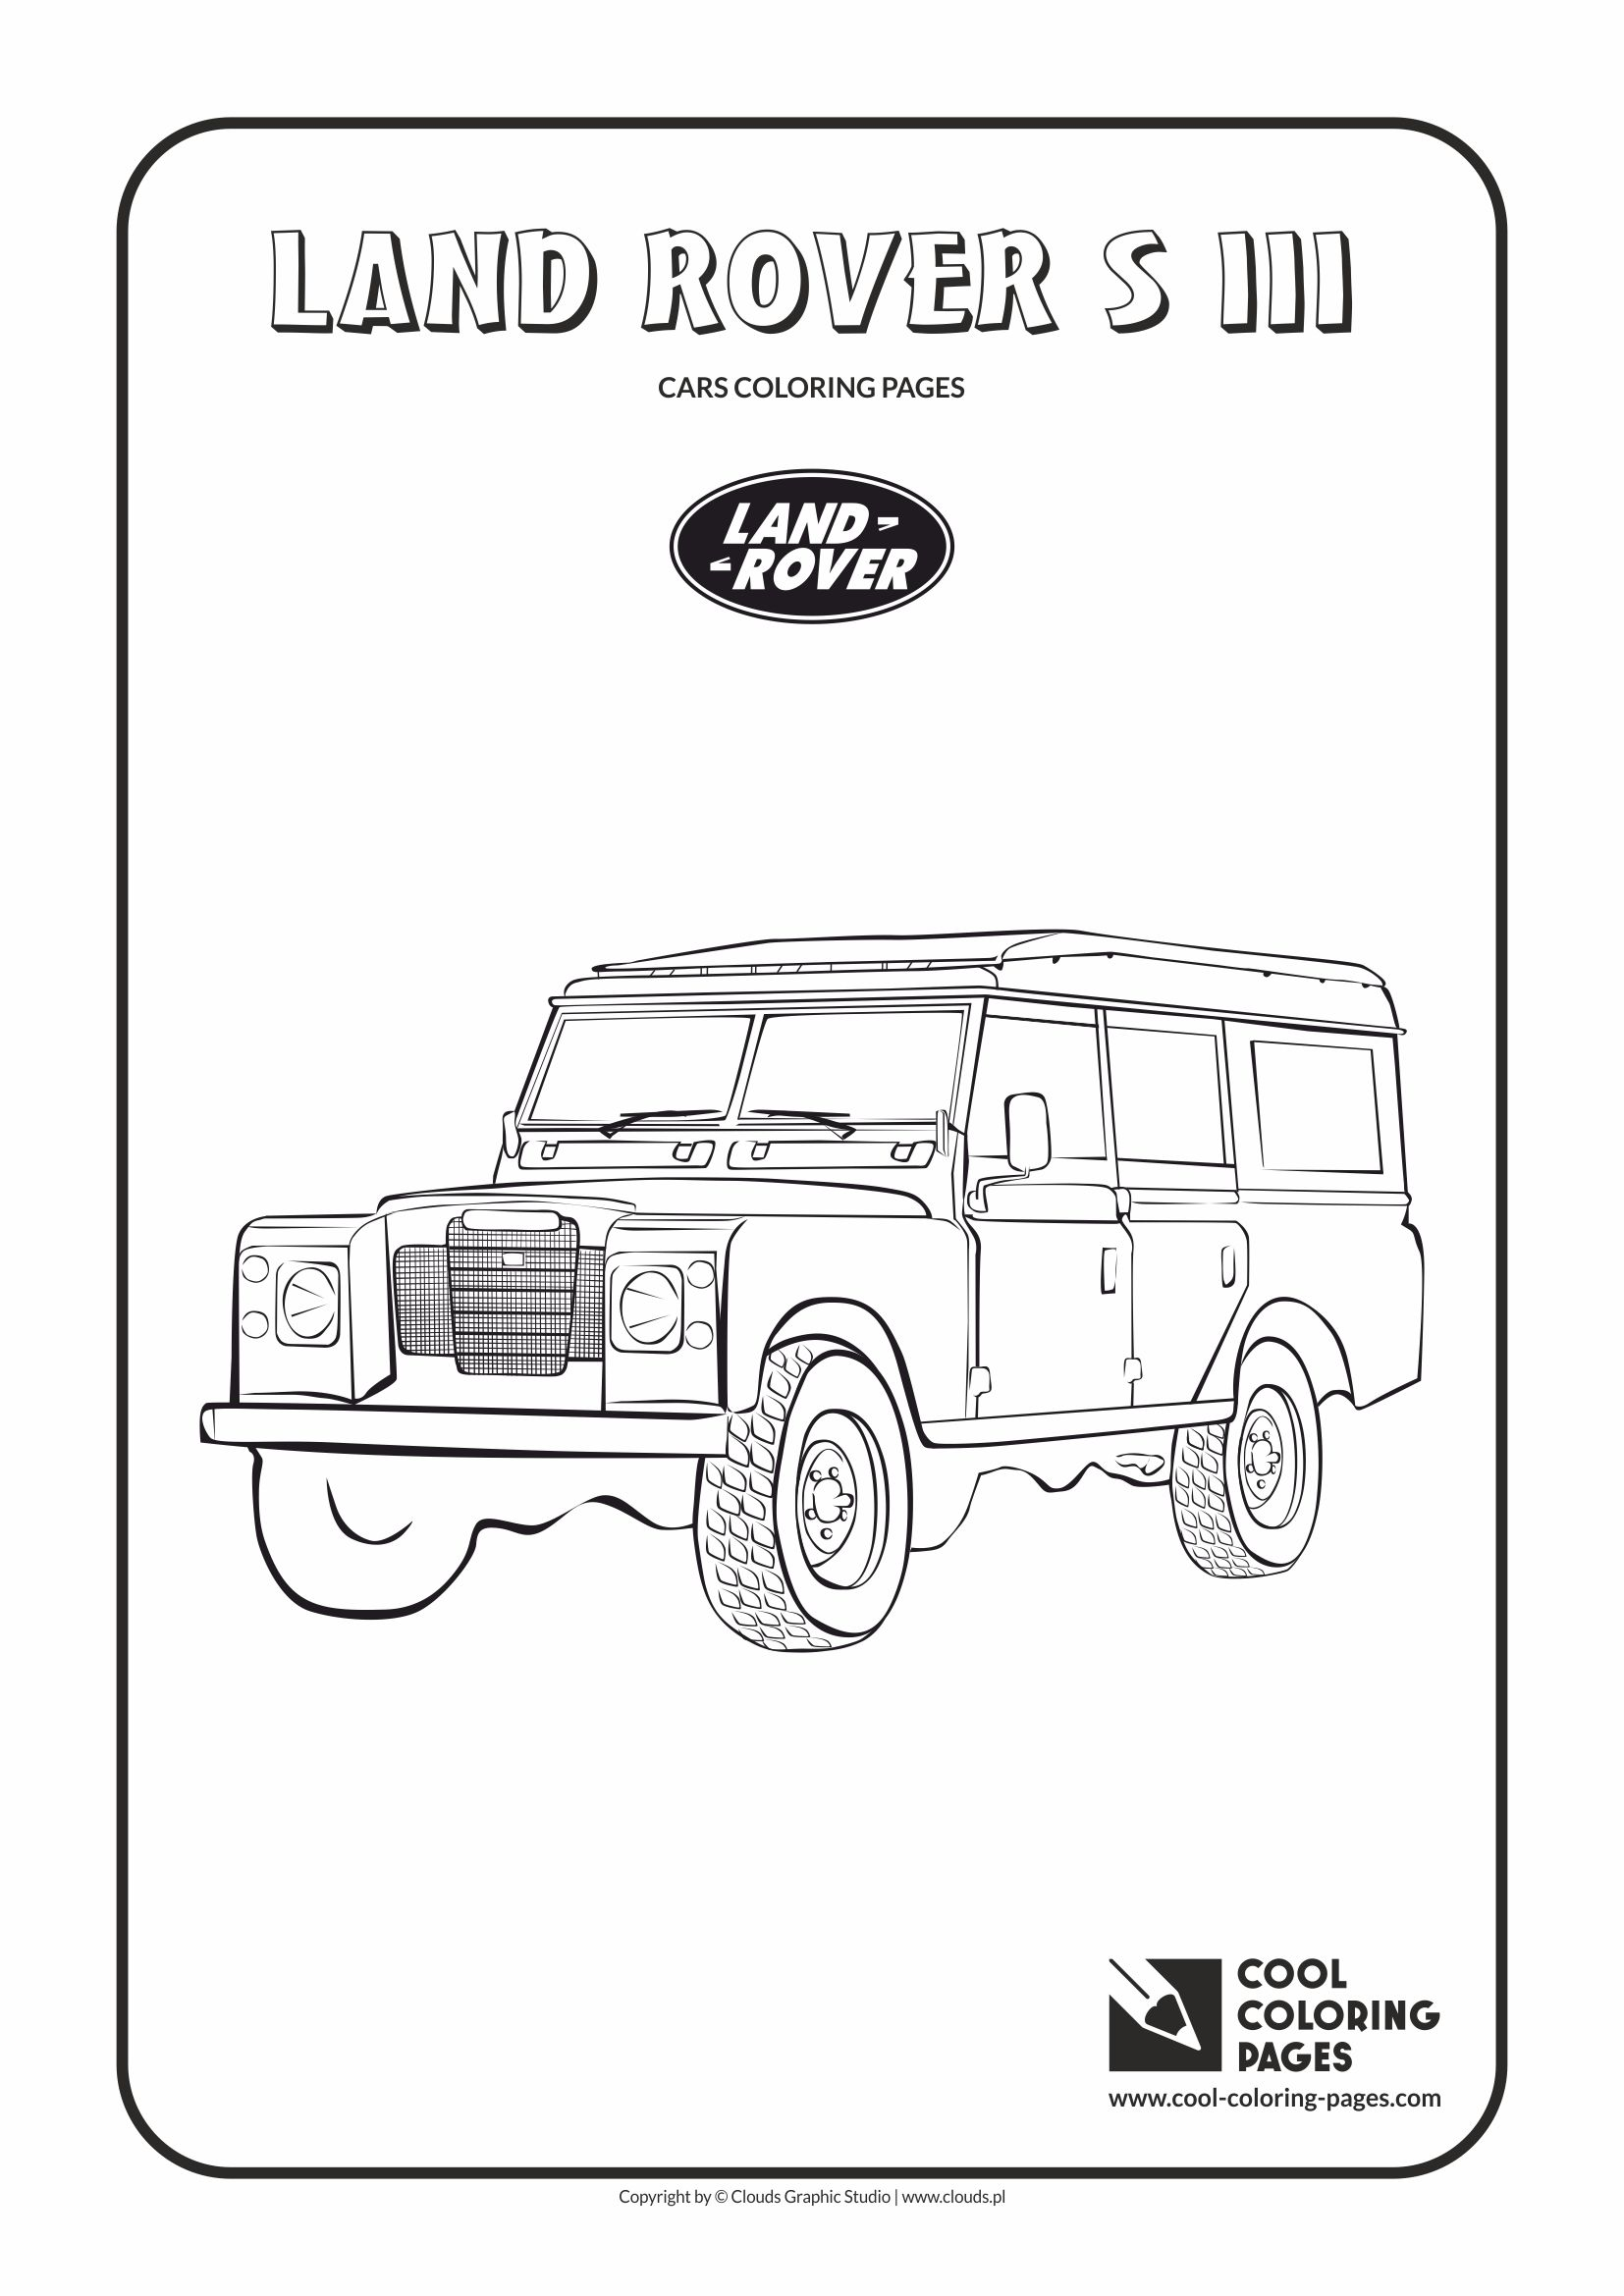 Cool Coloring Pages - Vehicles / Land Rover s III / Coloring page with Land Rover s III